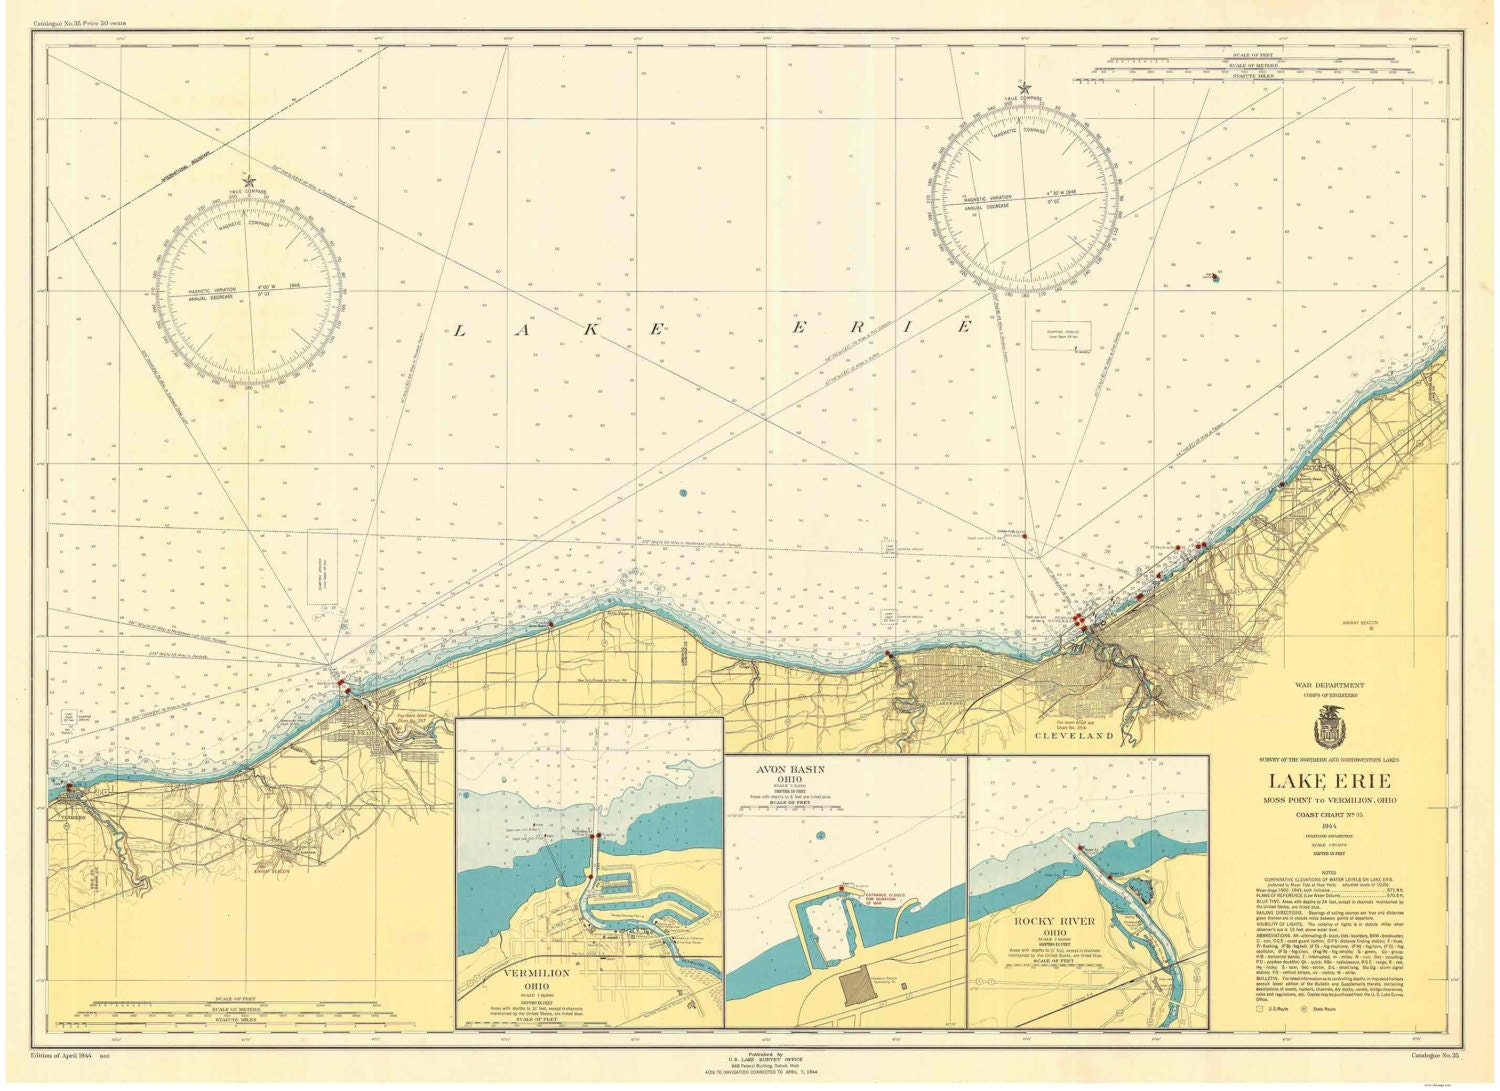 Lake Erie - 1944 - Moss Point to Vermilion, Ohio - Cleveland - Nautical Map  Reprint - Great Lakes #3 - 35